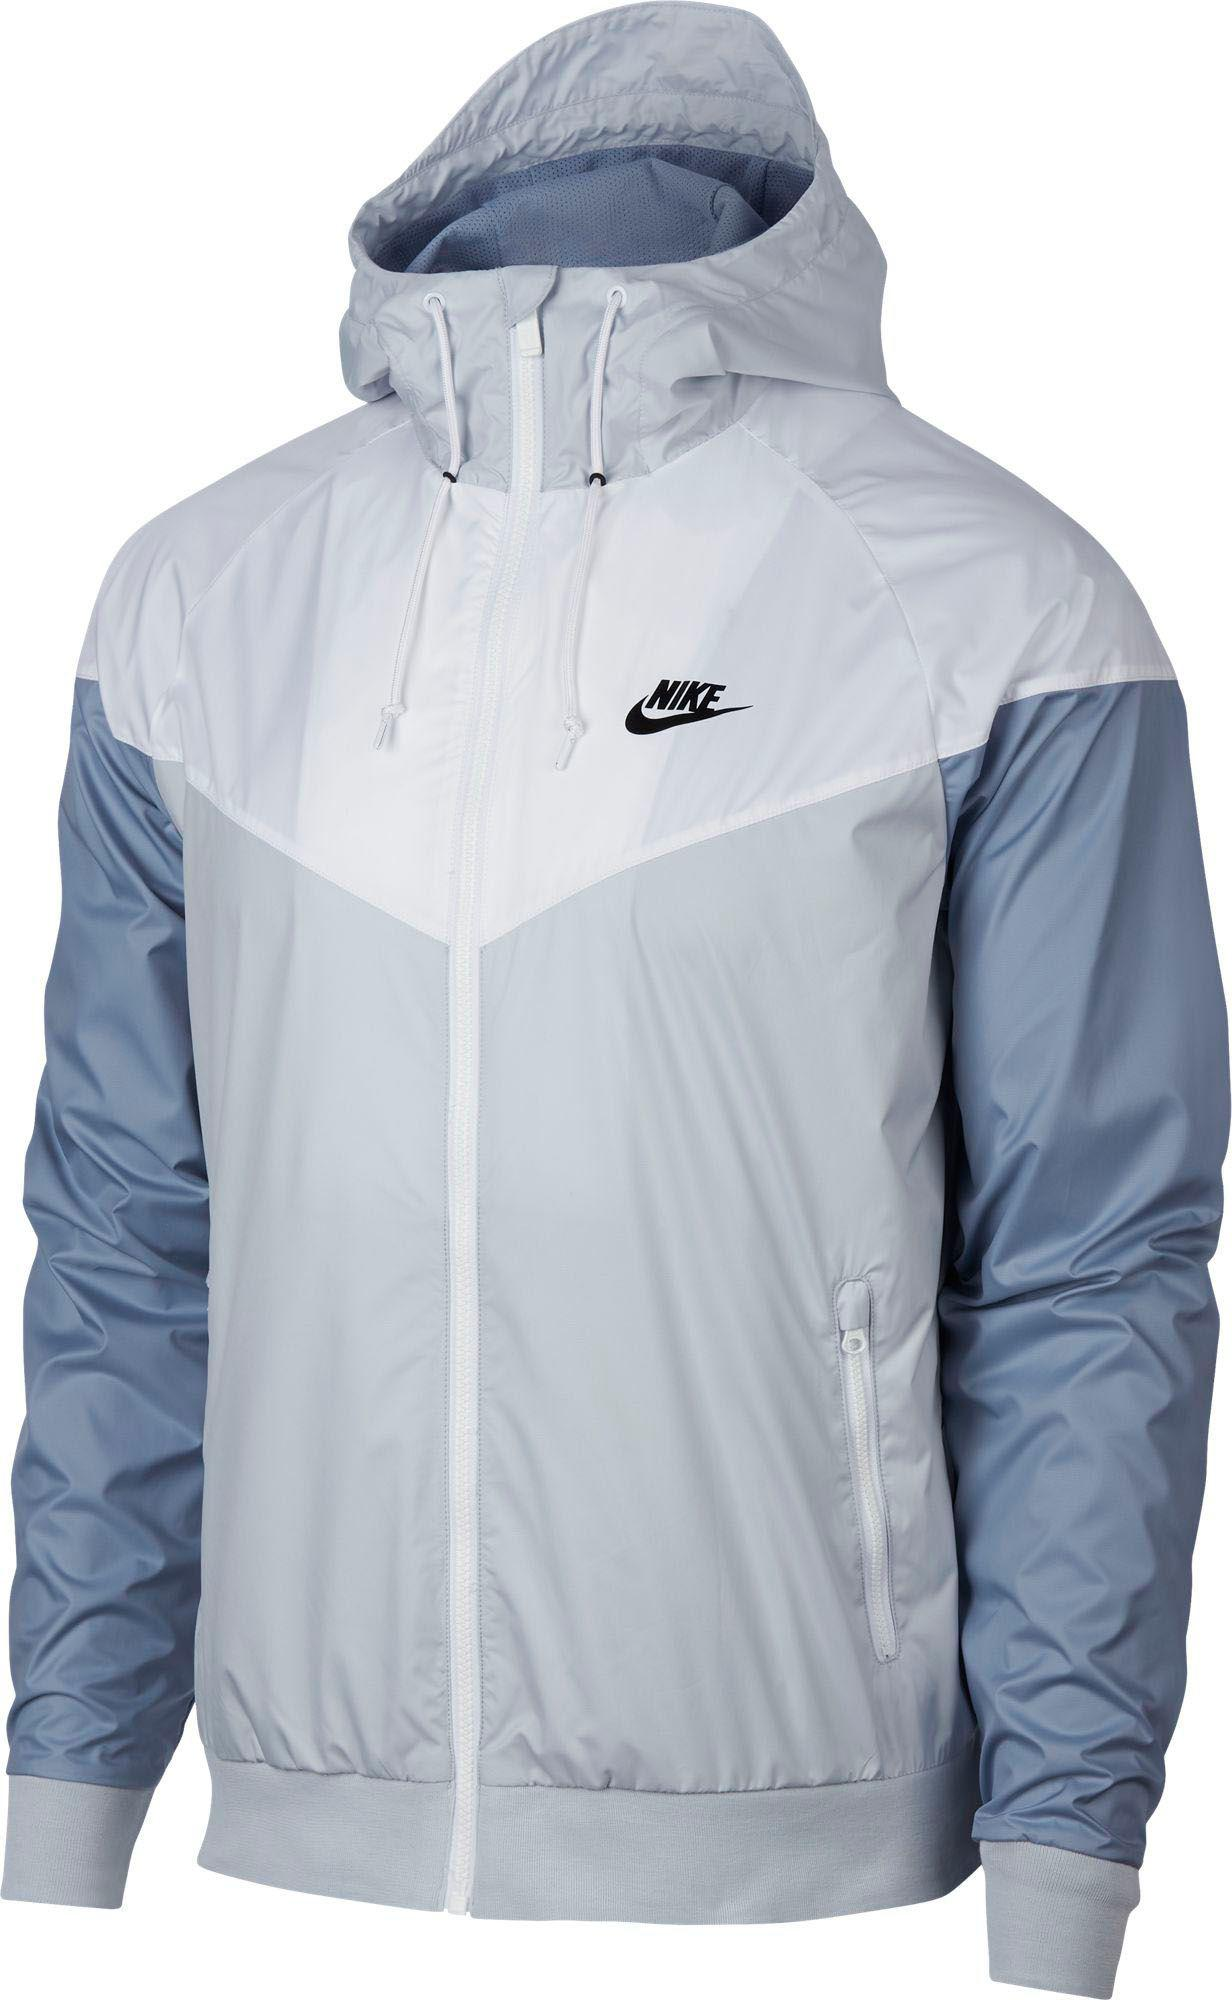 check out 56595 09fbe Nike - White Windrunner Full Zip Jacket for Men - Lyst